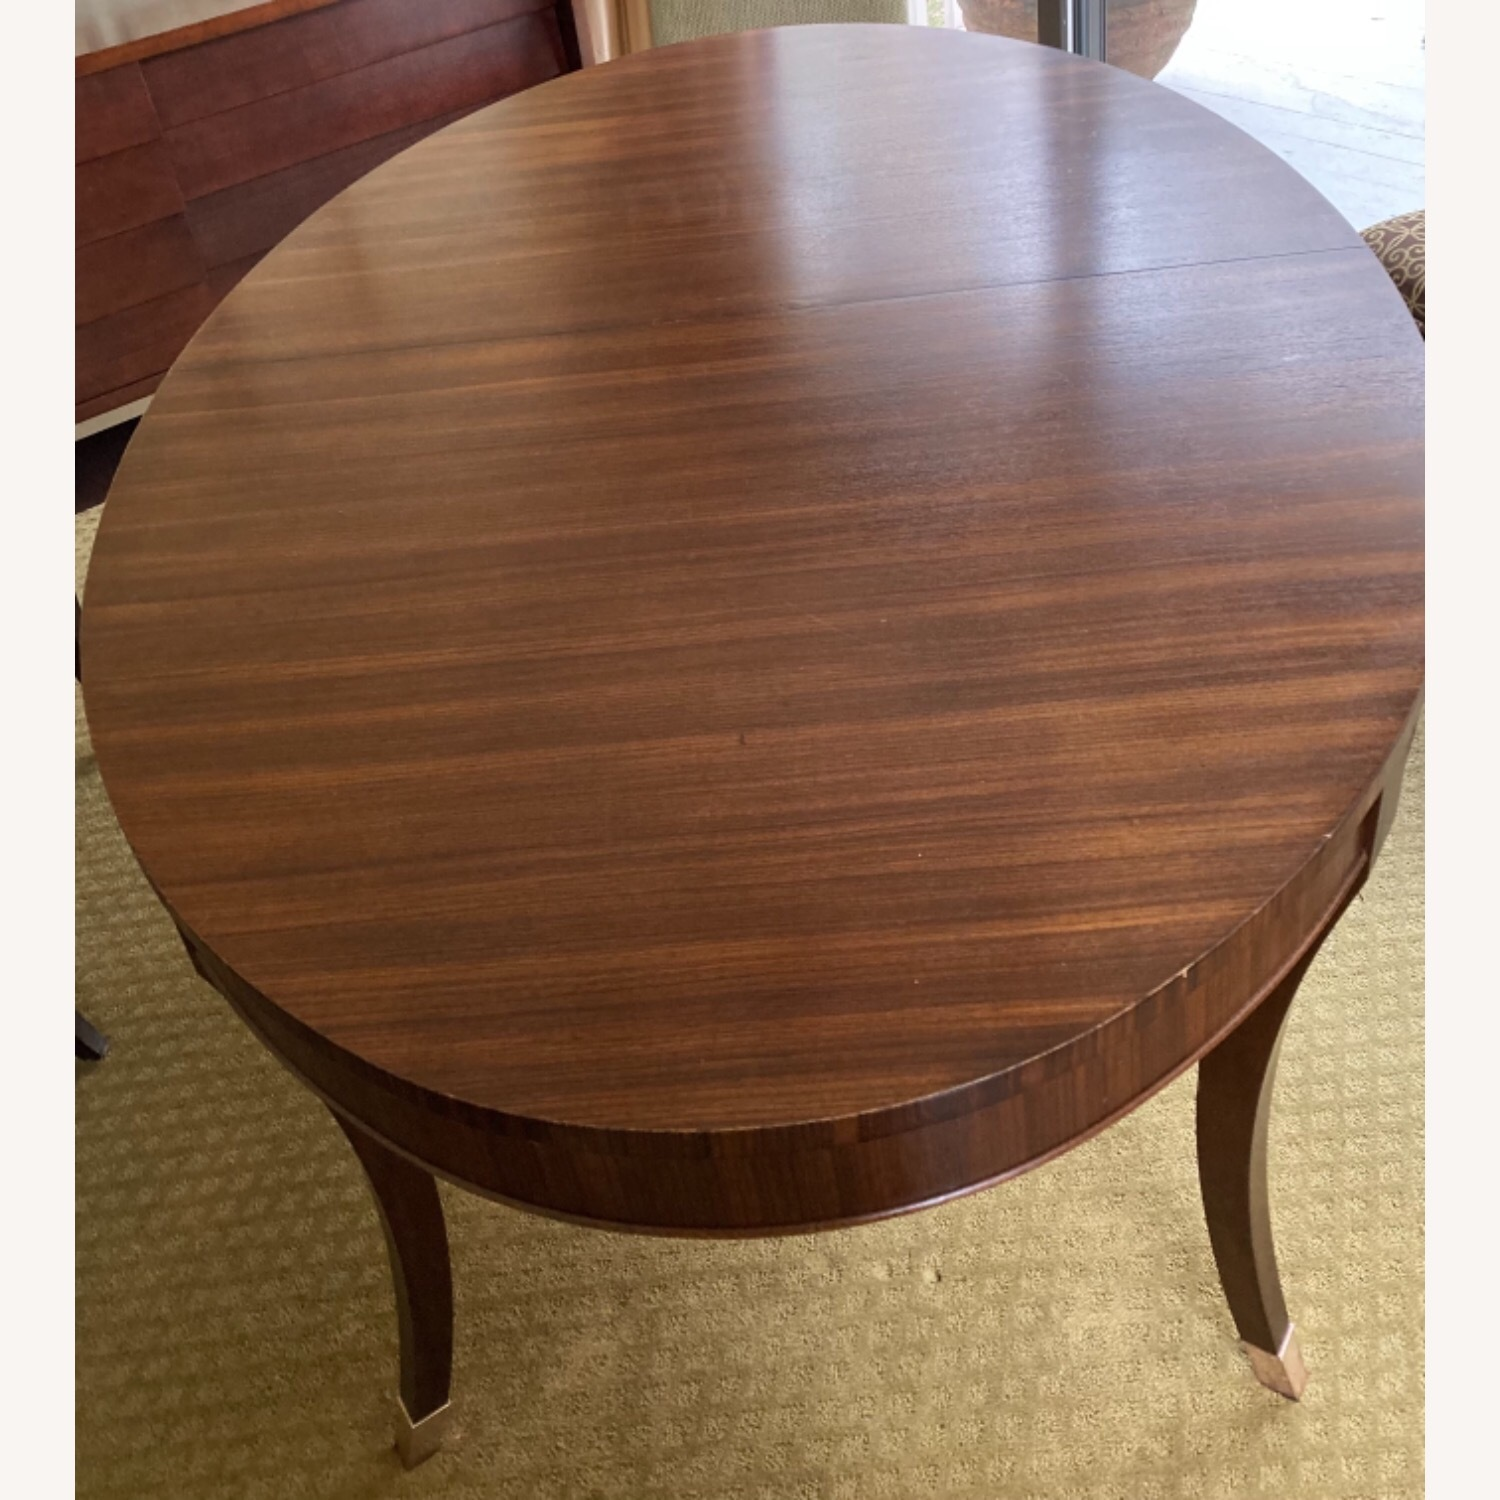 Oval Dining Table and 4 Chairs - image-7